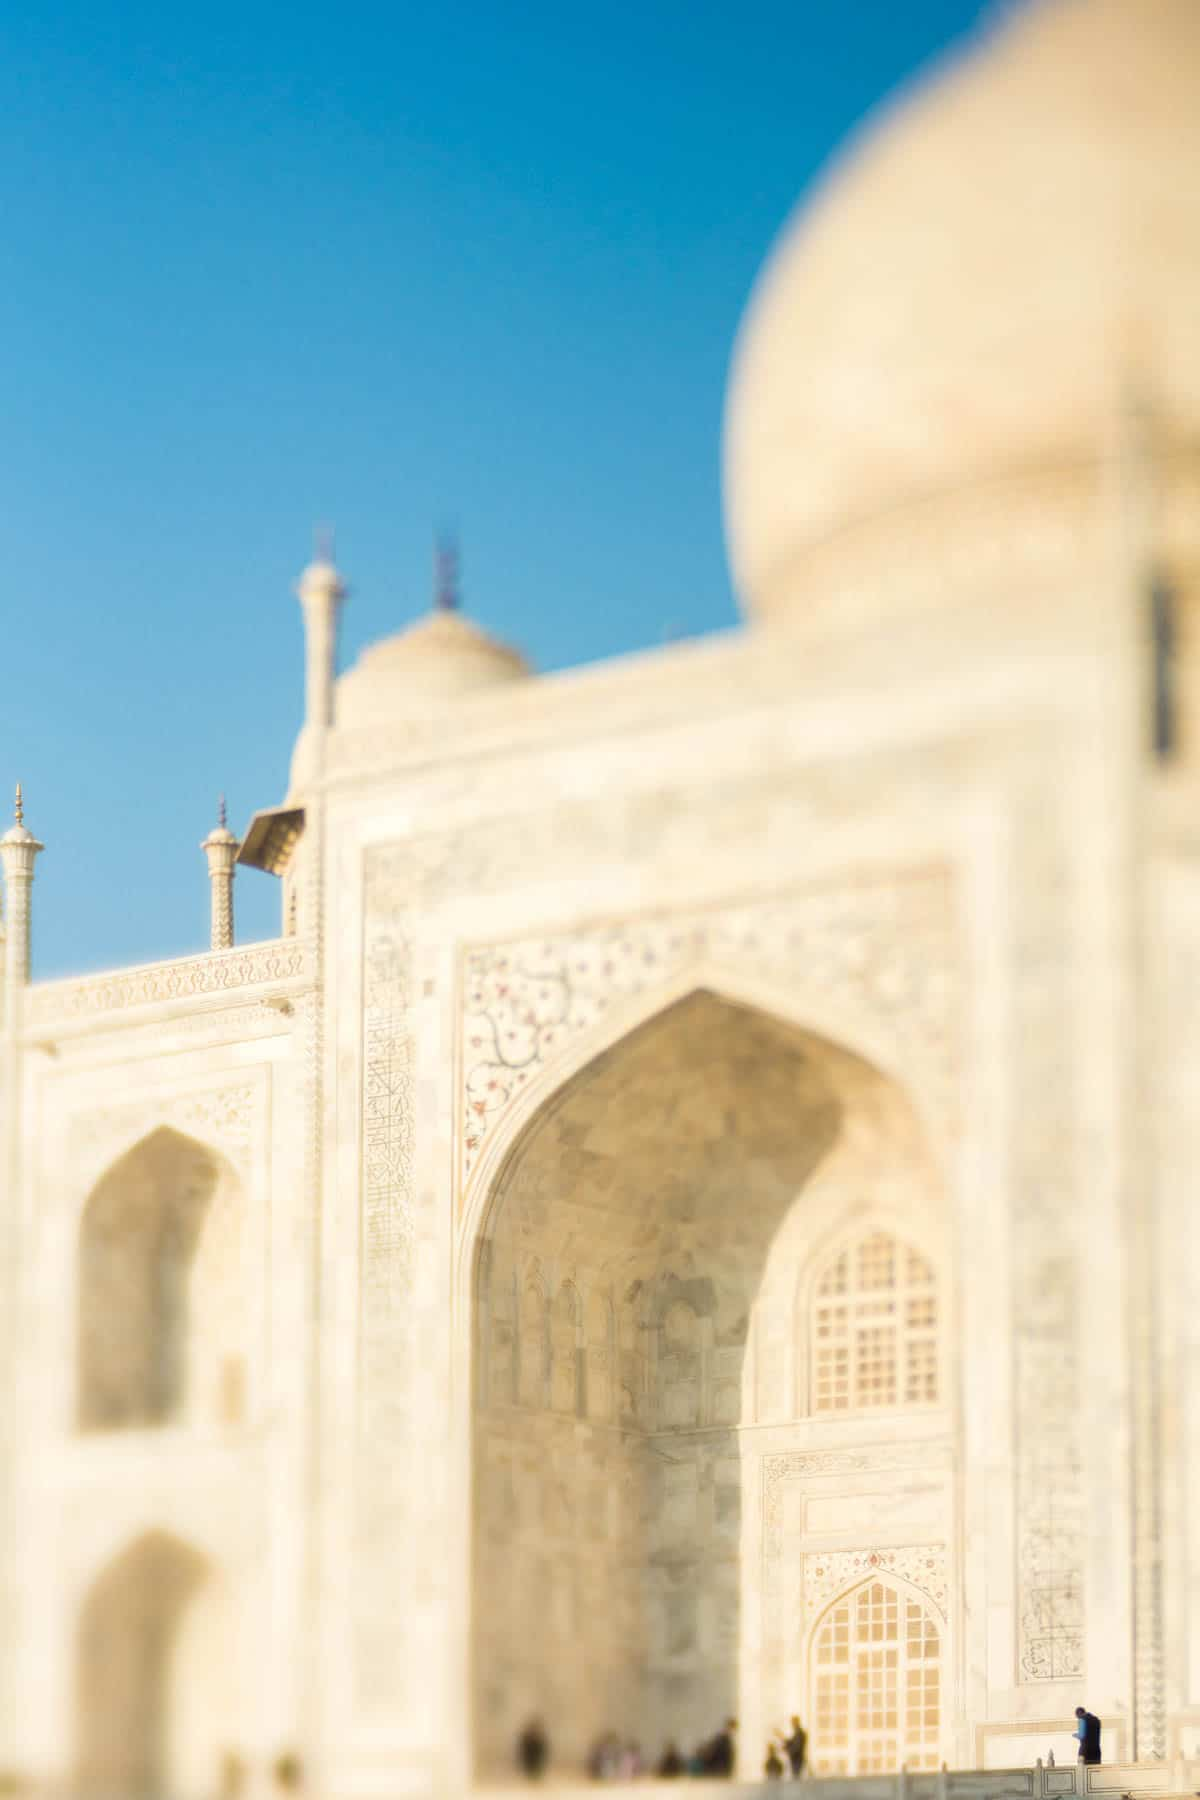 Lensbaby Edge 50 Optic review - The Taj Mahal in Agra, India via the Lensbaby Edge 50 Optic - Lost With Purpose